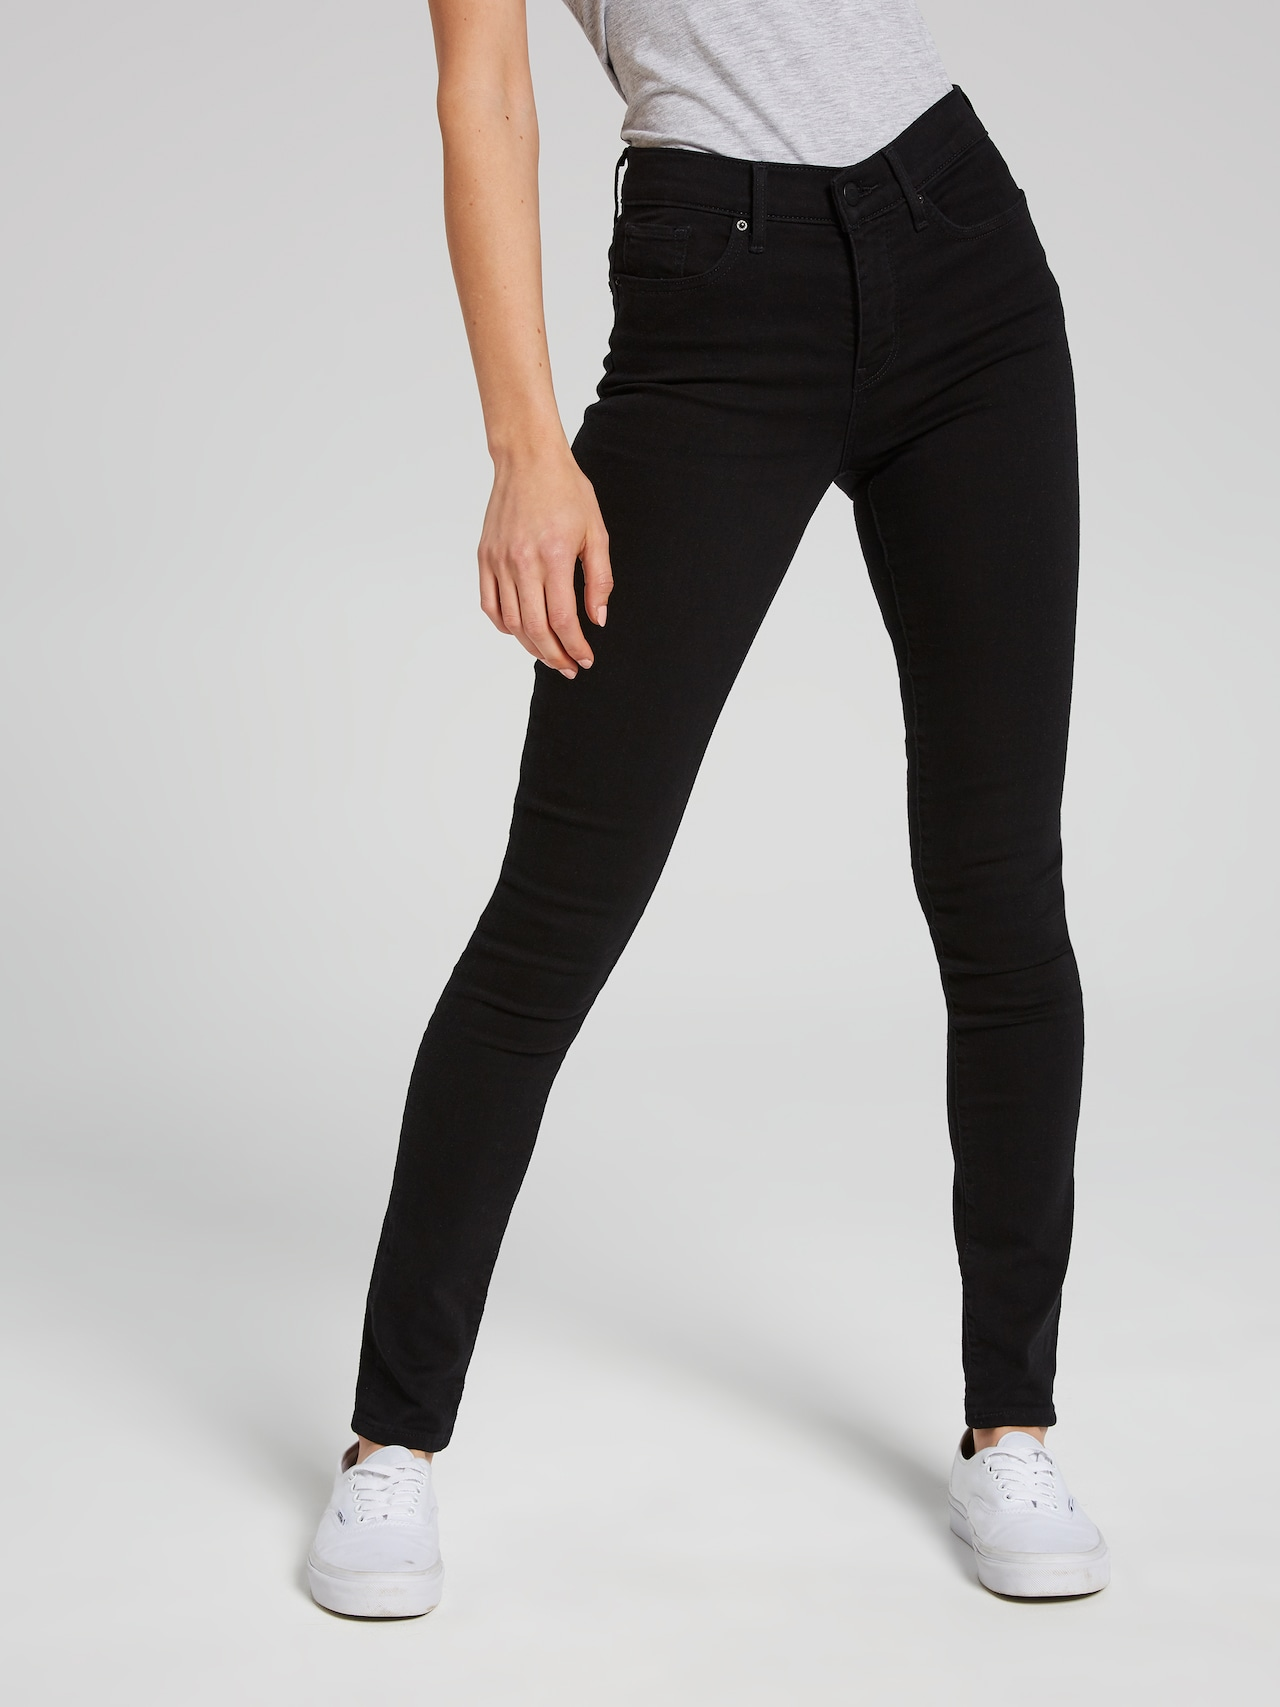 e81f6a0c Levi's 311 Shaping Skinny Jean In Black Sheep - Just Jeans Online